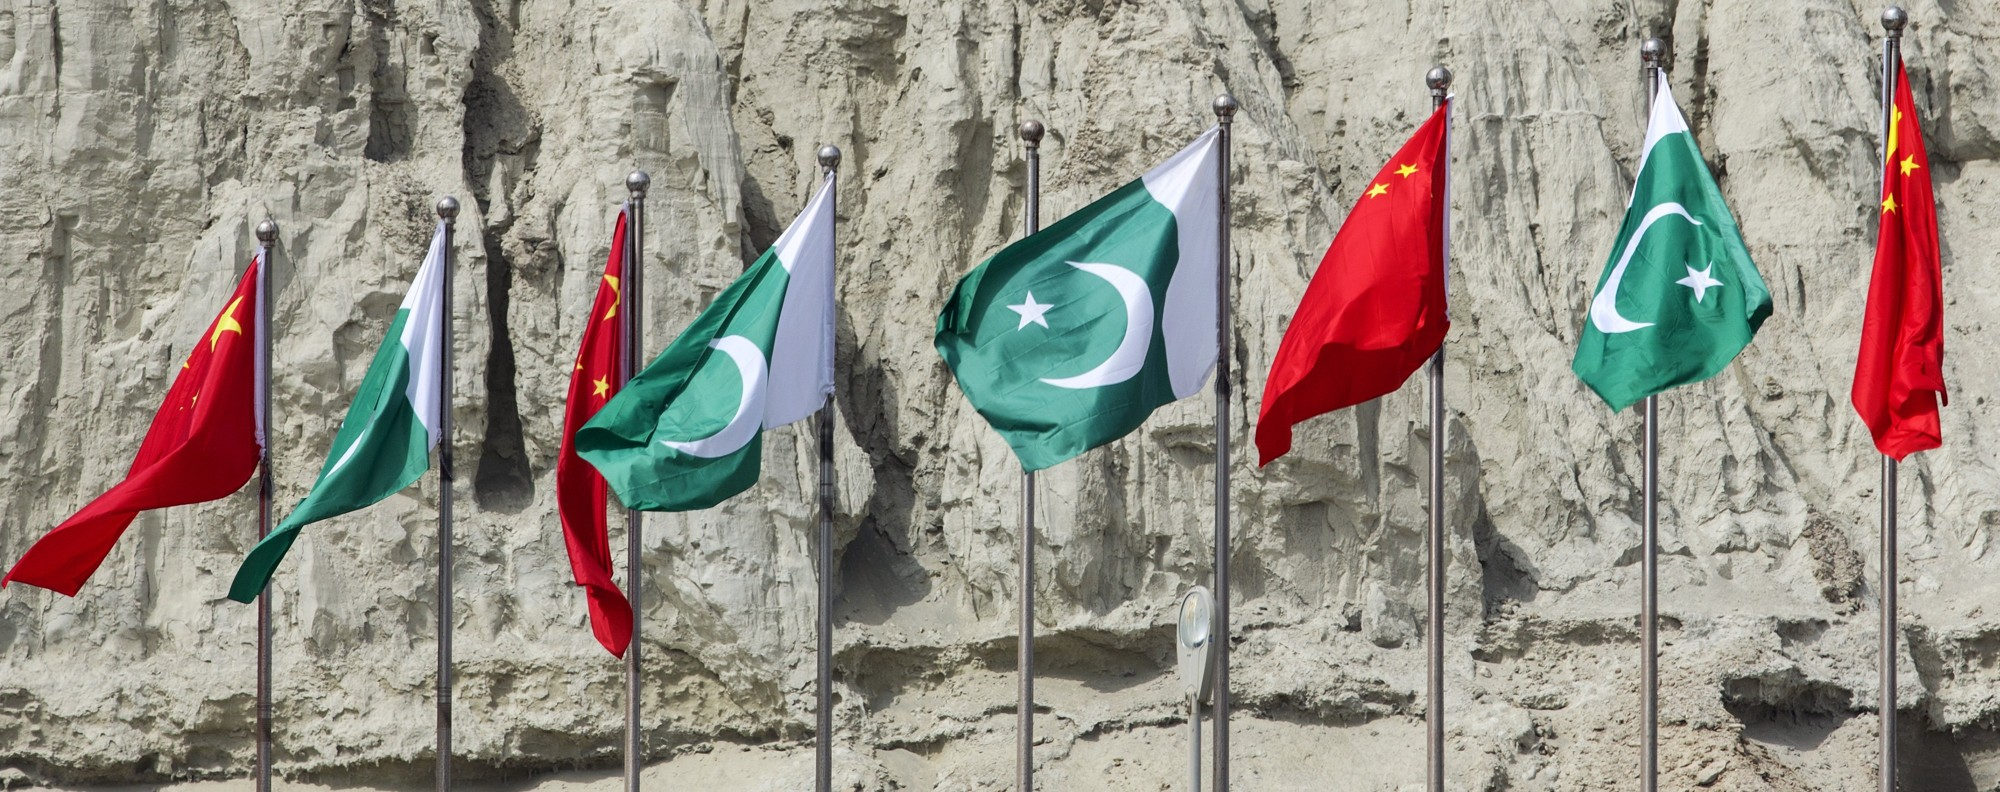 Chinese and Pakistani flags fly at Gwadar port. Photo: Bloomberg